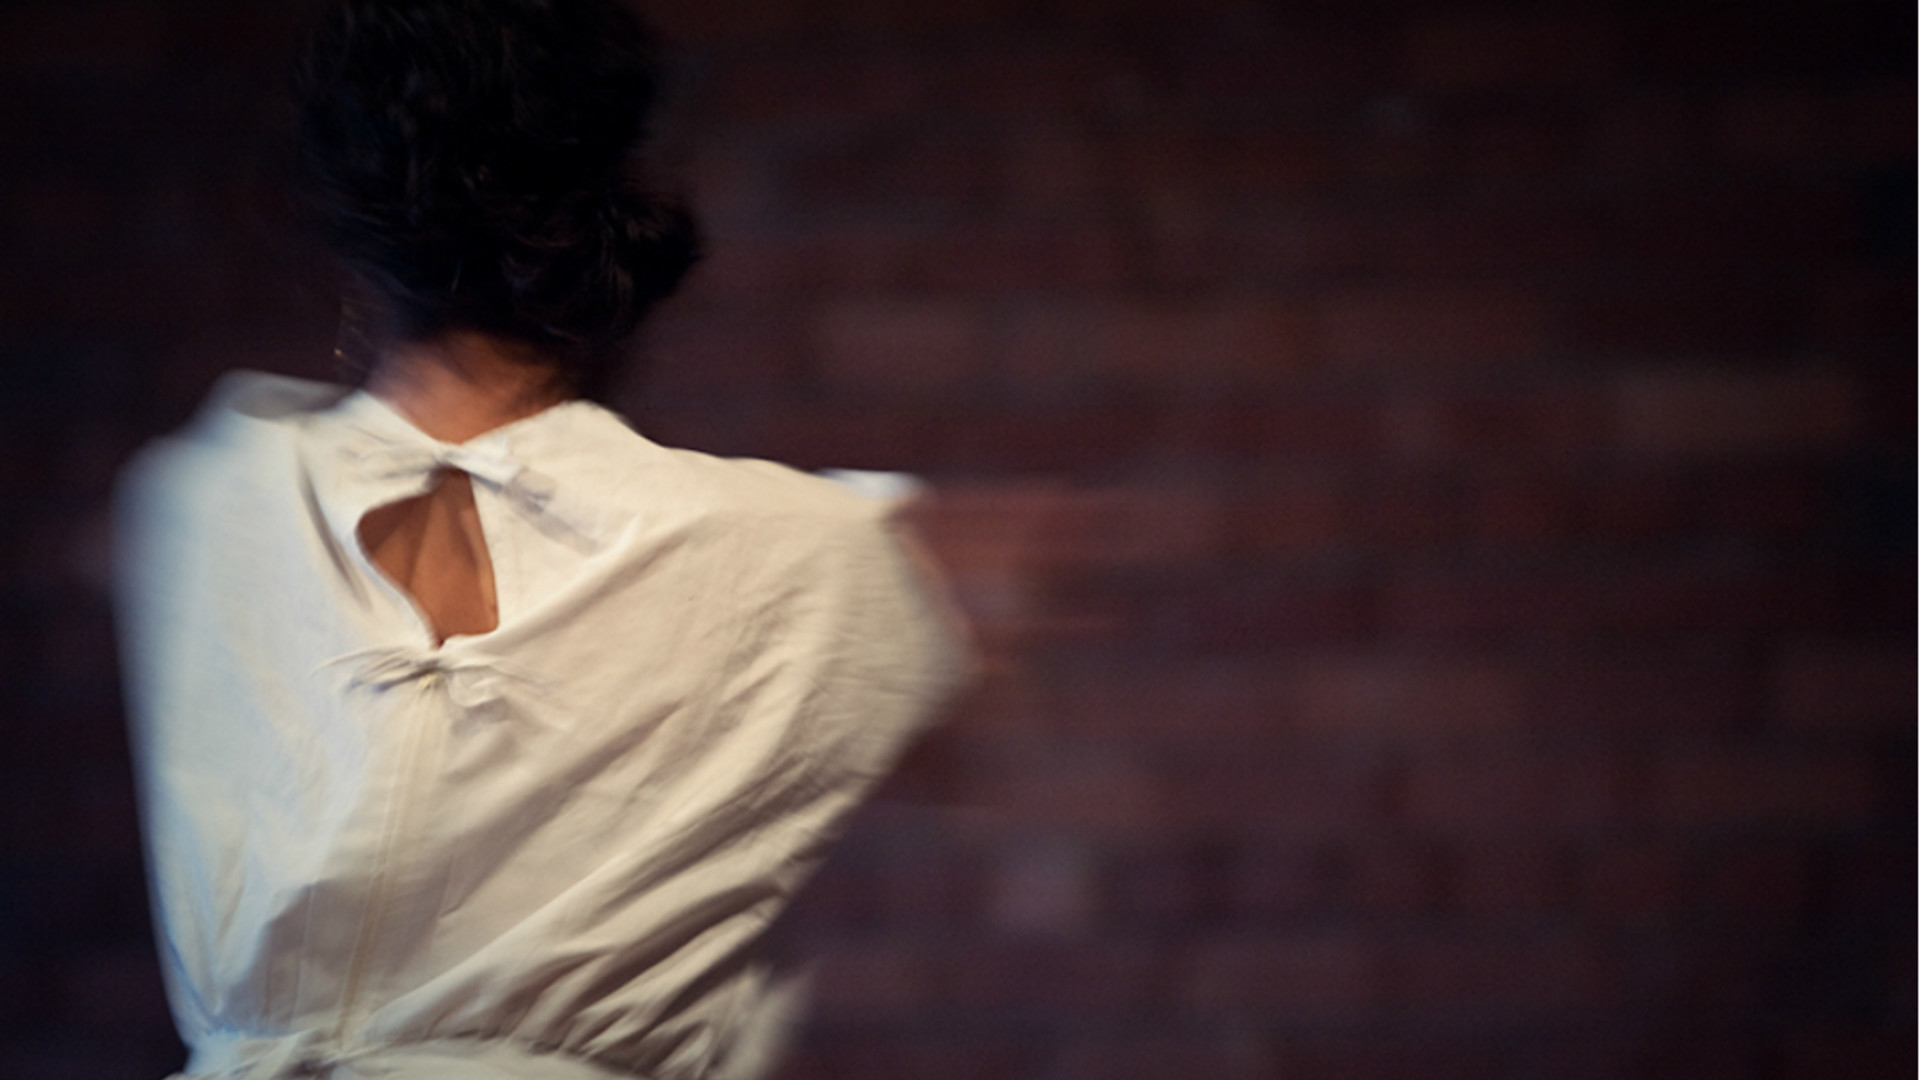 A blurred image of the back of the torso of a  woman dressed in white, perhaps caught mid-spin